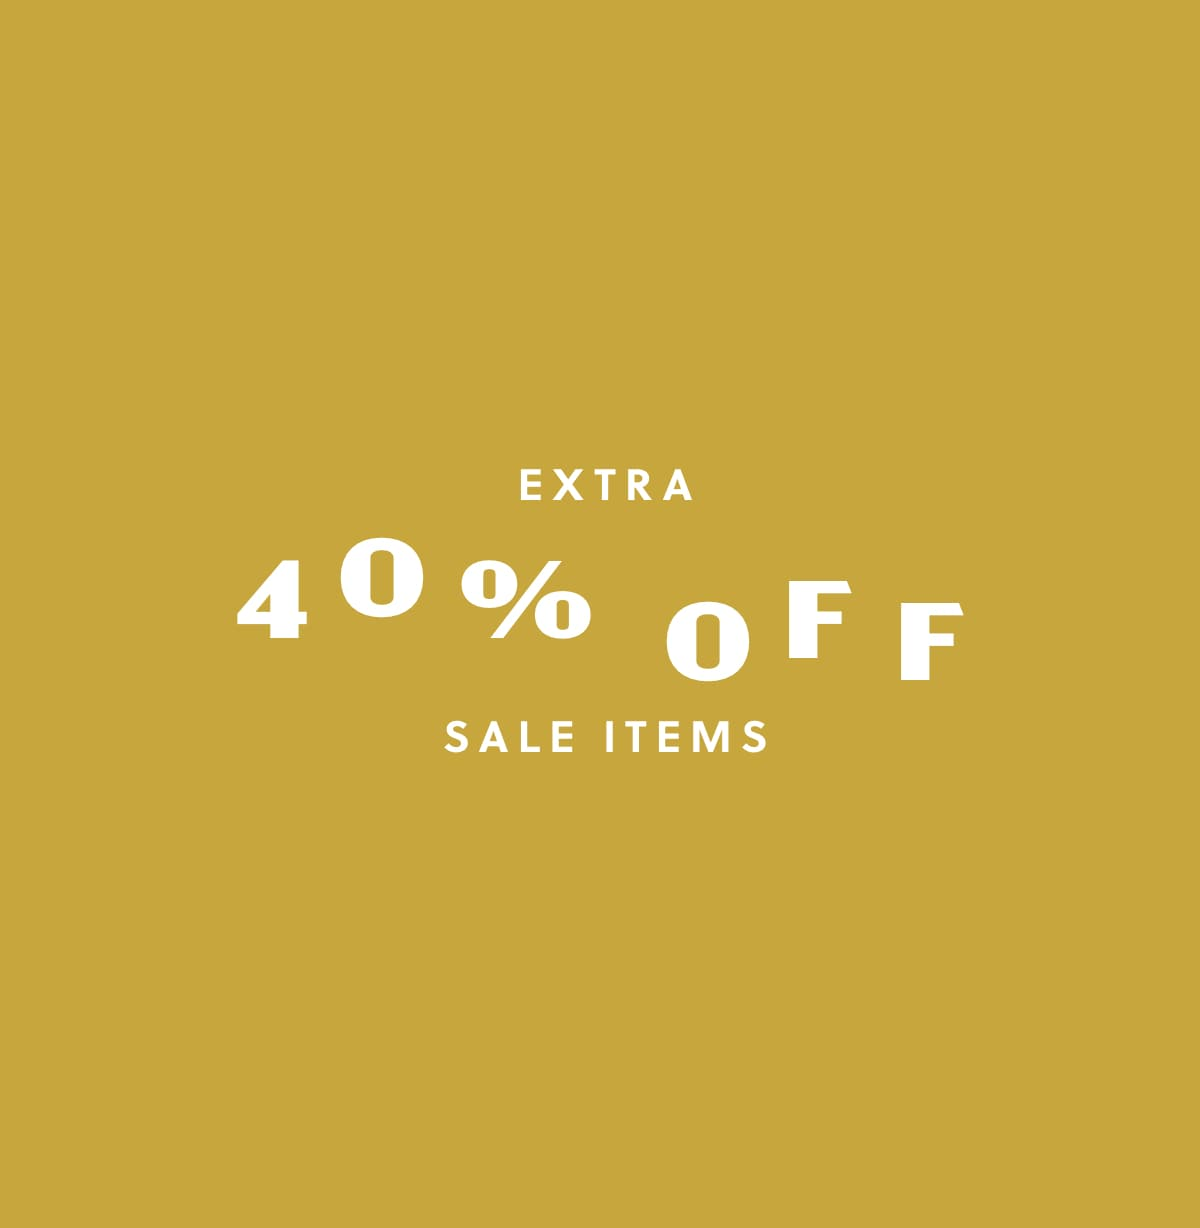 EXTRA 40% OFF SALE ITEMS